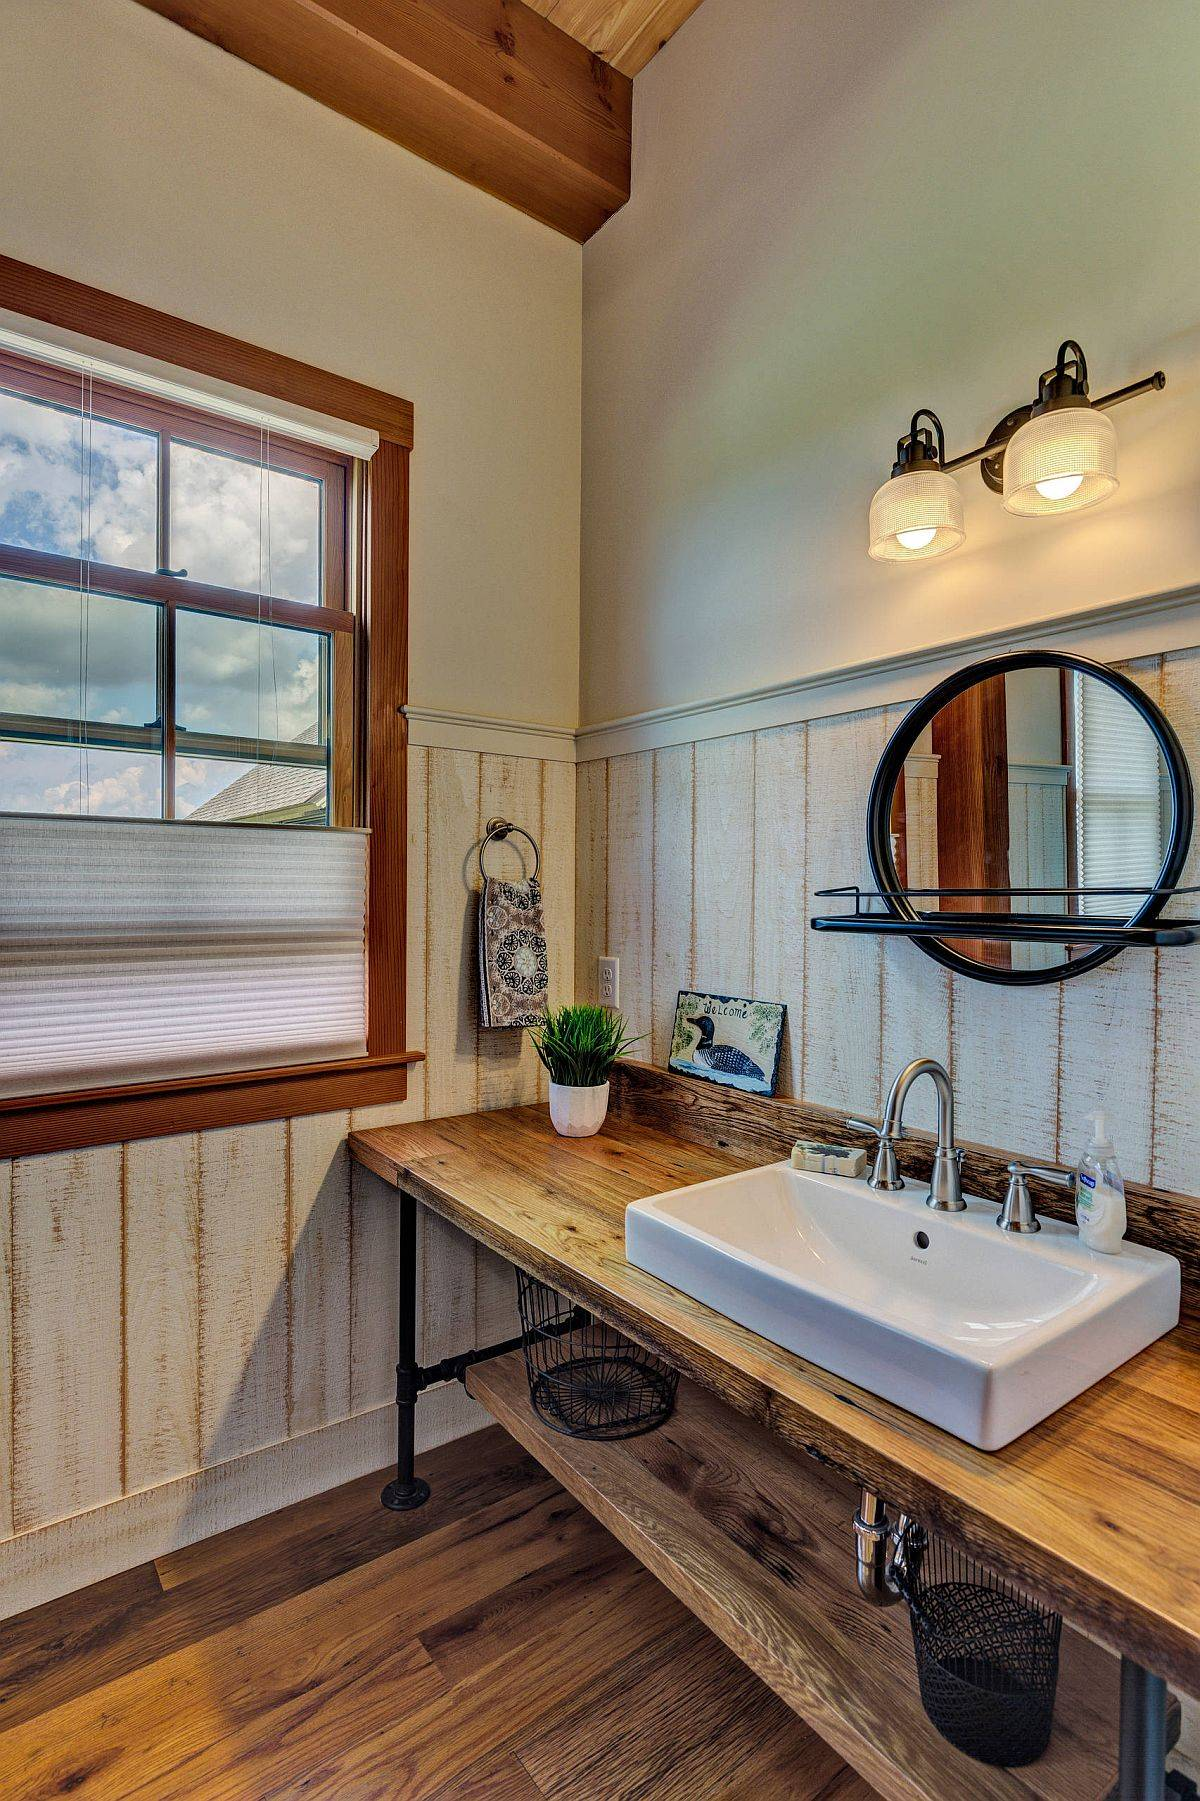 Custom-metal-and-wood-vanity-and-sink-in-the-bathroom-accentuates-its-farmhouse-style-45208